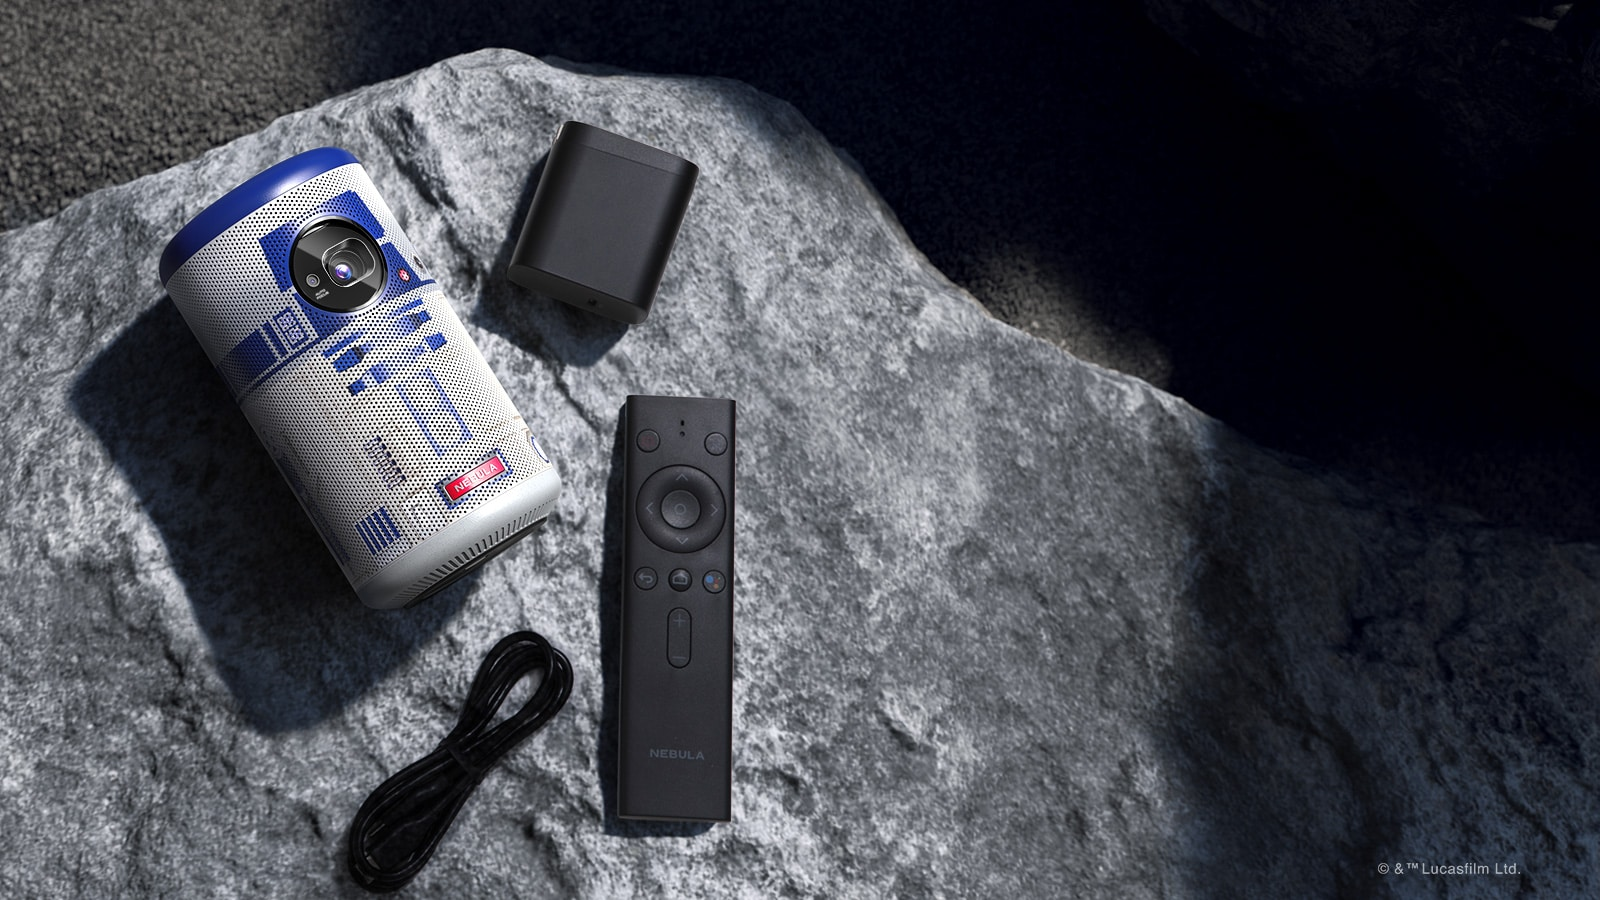 Star Wars-themed projector looks and sounds like R2-D2 13